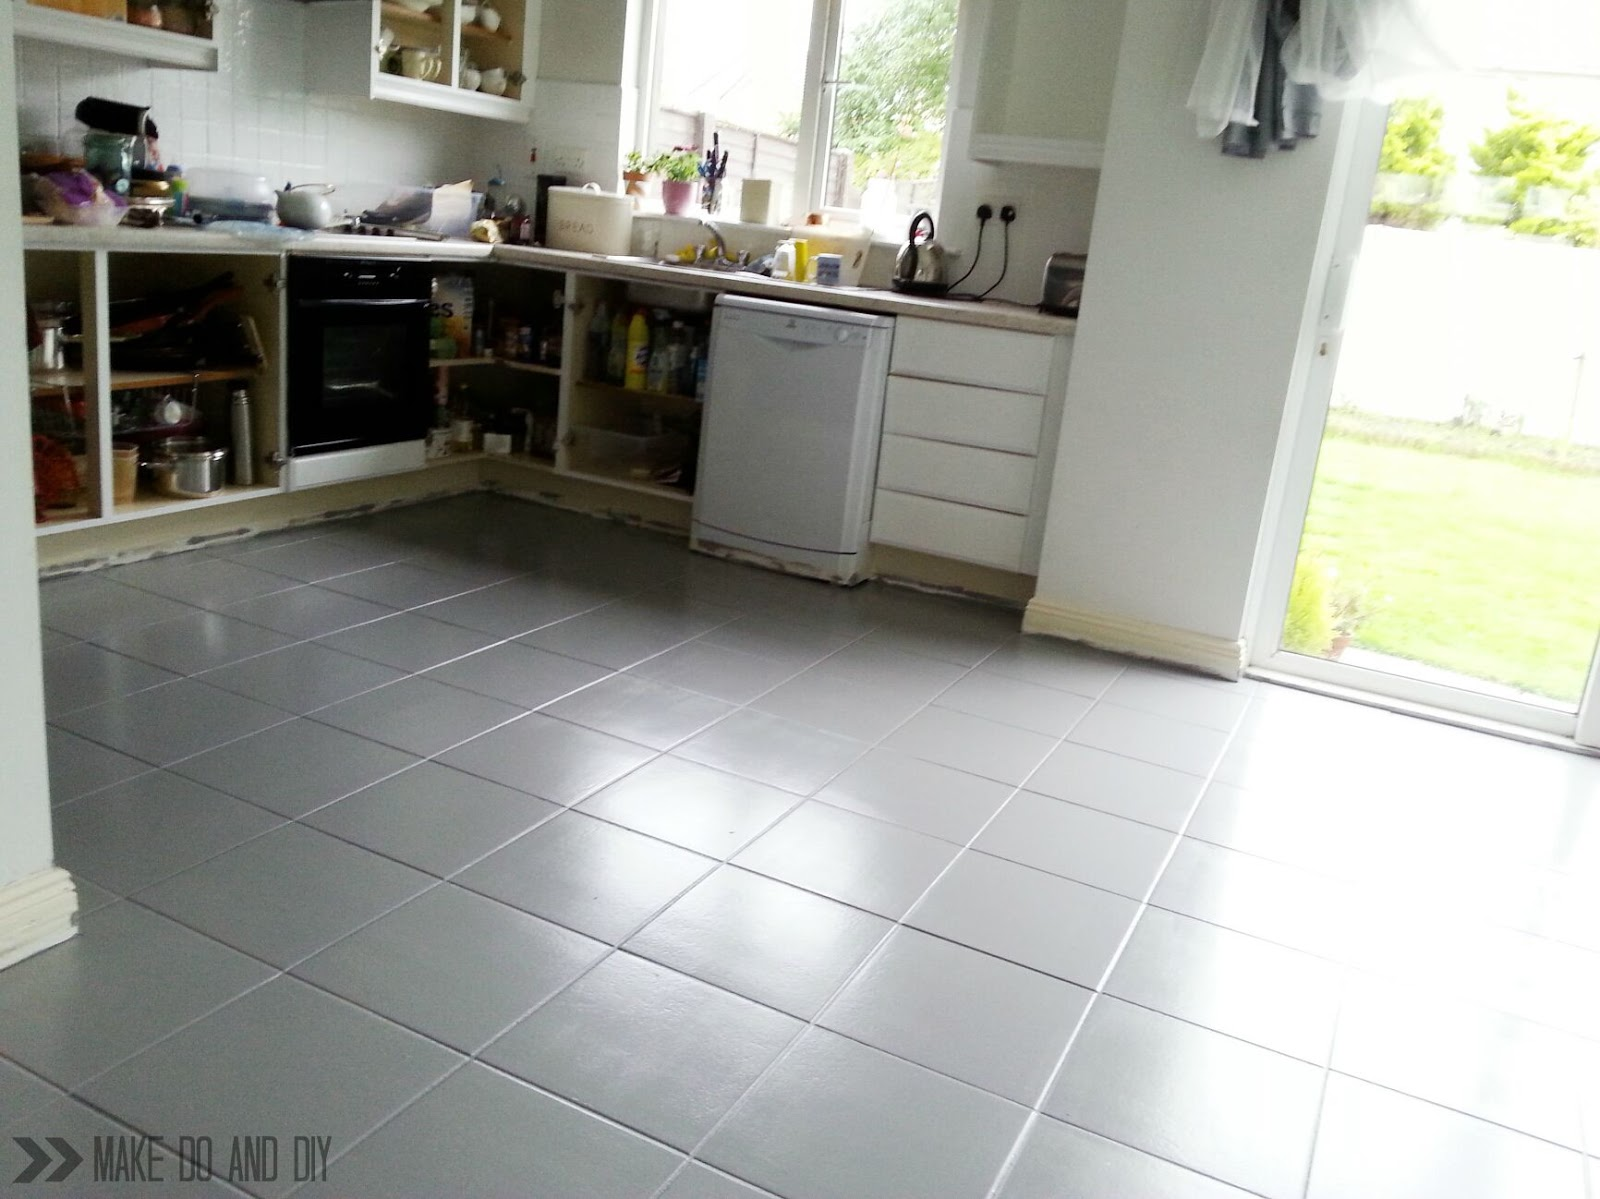 Generous 1200 X 600 Floor Tiles Small 2 X 12 Ceramic Tile Round 2X2 Ceiling Tiles 4 Ceramic Tile Old Acoustic Ceiling Tiles 2X4 SoftAcoustic Ceiling Tiles Asbestos Can You Paint Ceramic Floor Tile In Kitchen | Home Painting